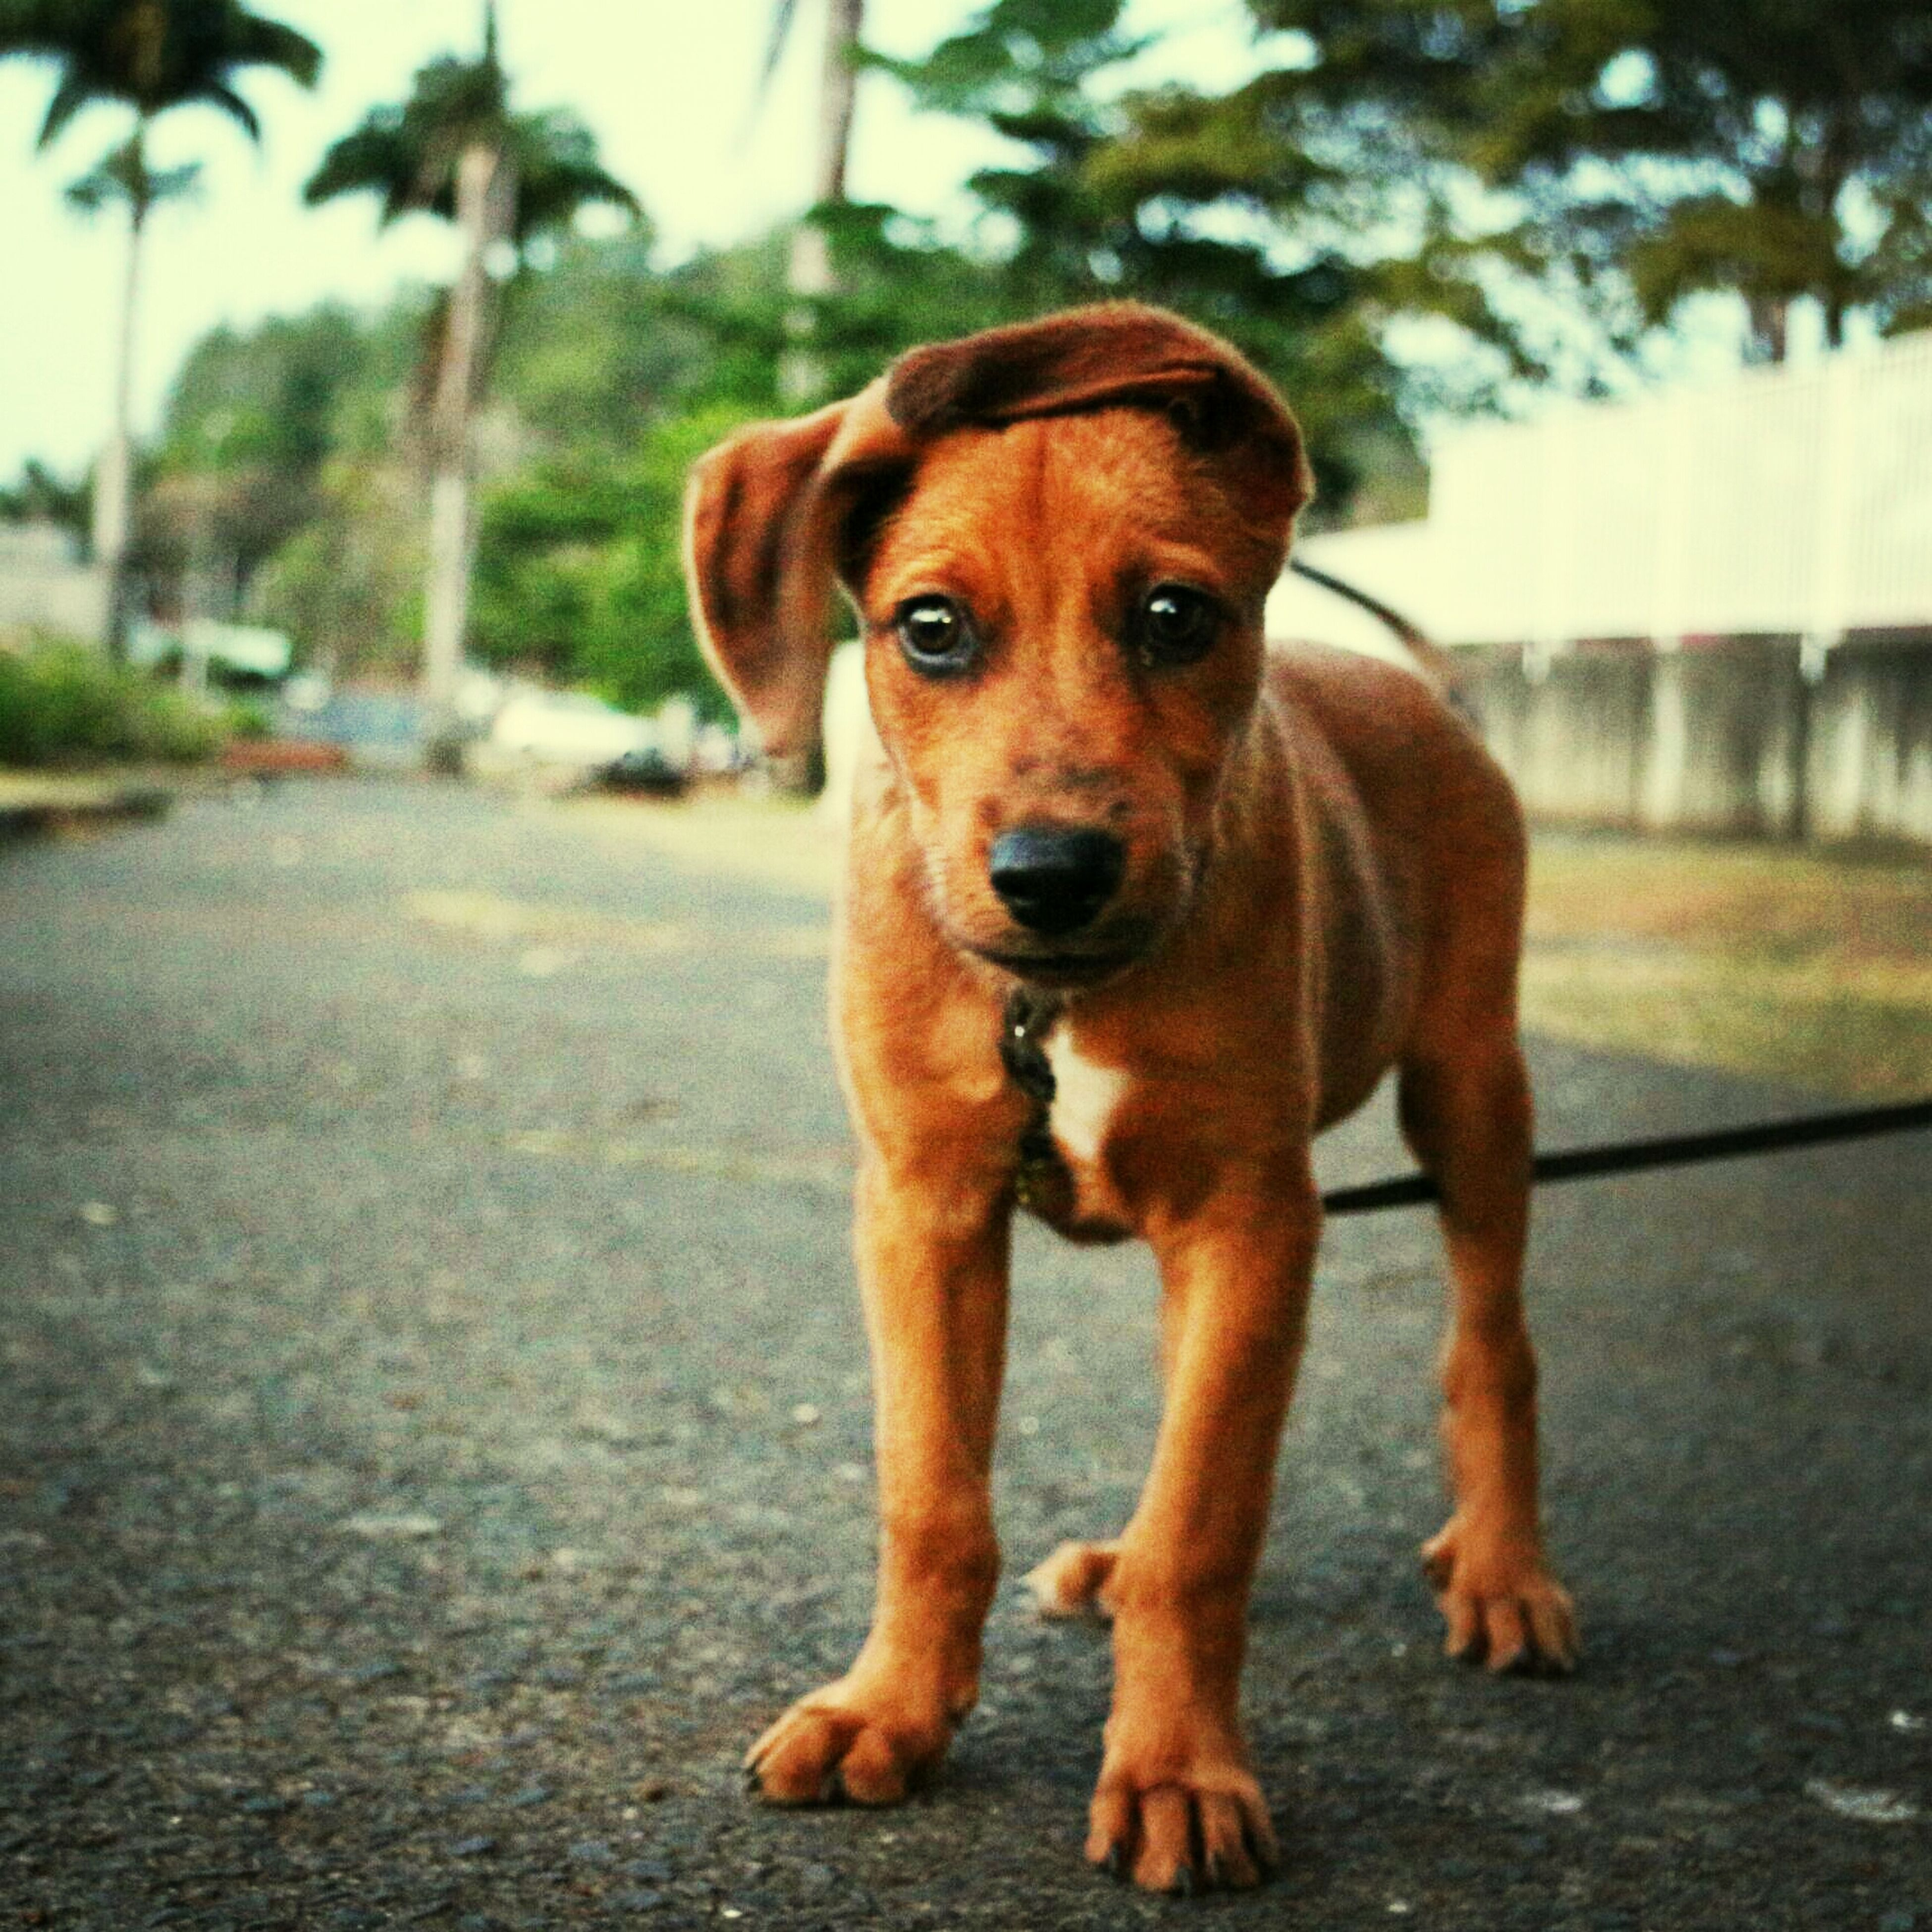 animal themes, one animal, dog, pets, domestic animals, mammal, portrait, looking at camera, focus on foreground, street, sitting, zoology, animal head, close-up, pet collar, brown, standing, front view, full length